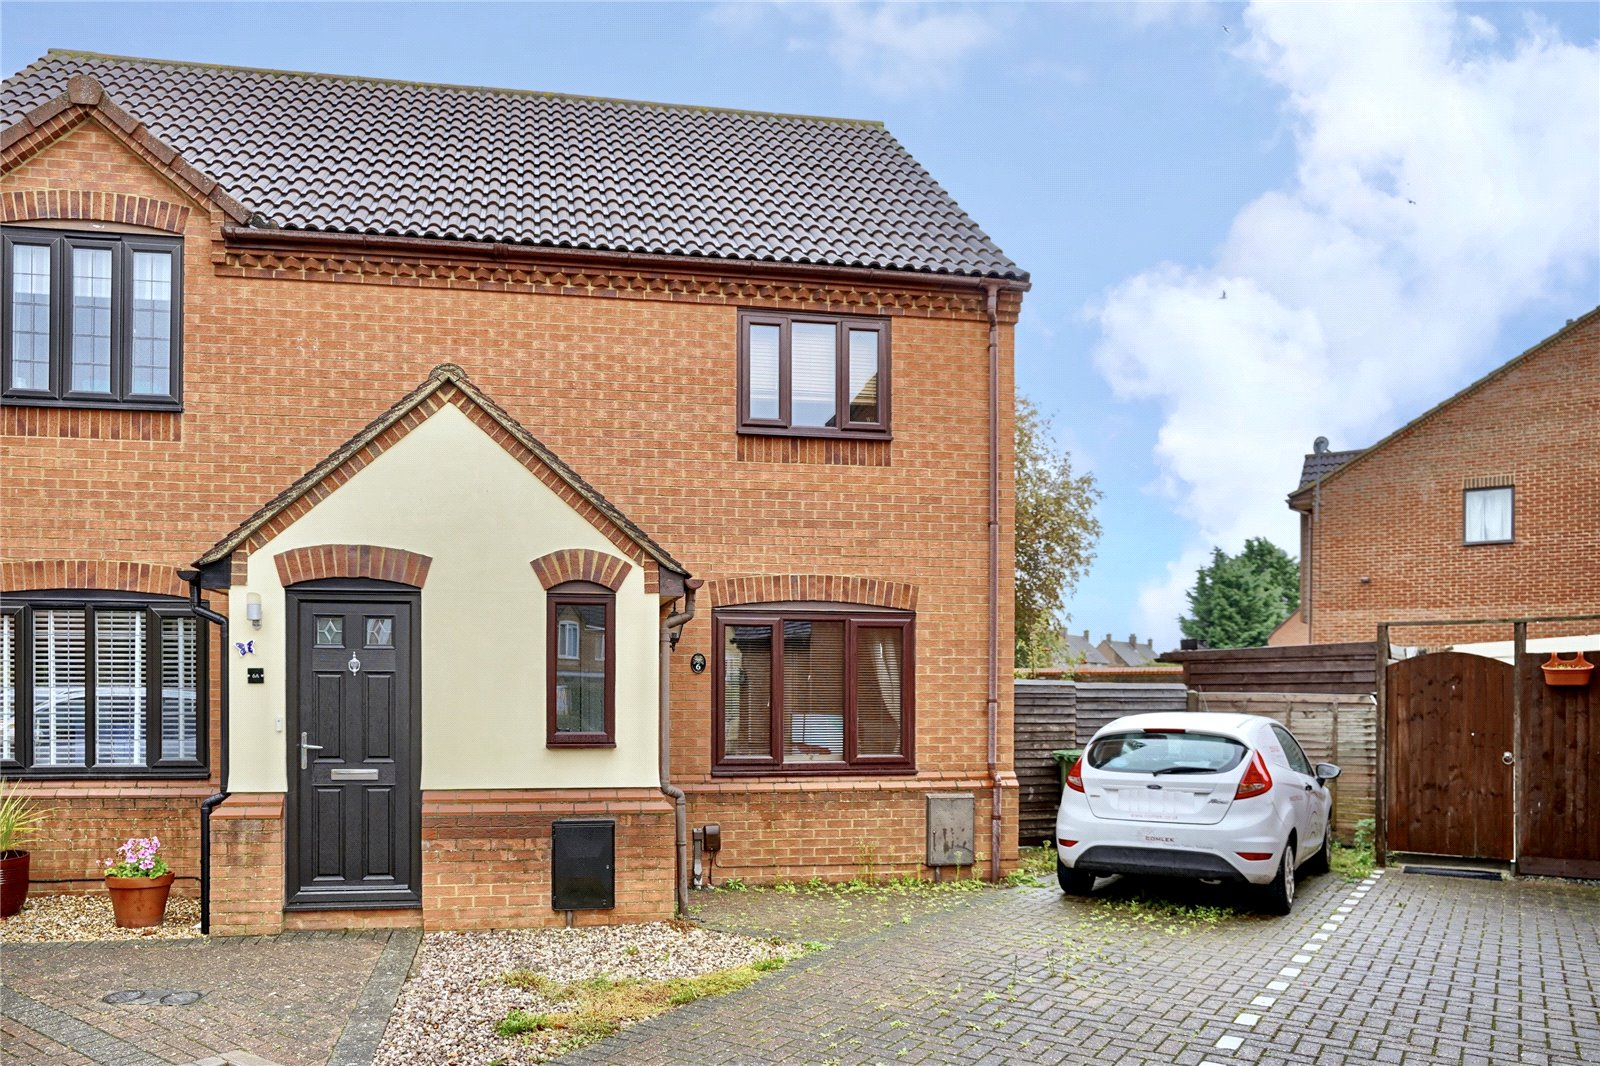 2 bed house for sale in Eaton Socon, Cornwallis Drive, PE19 8TX, PE19